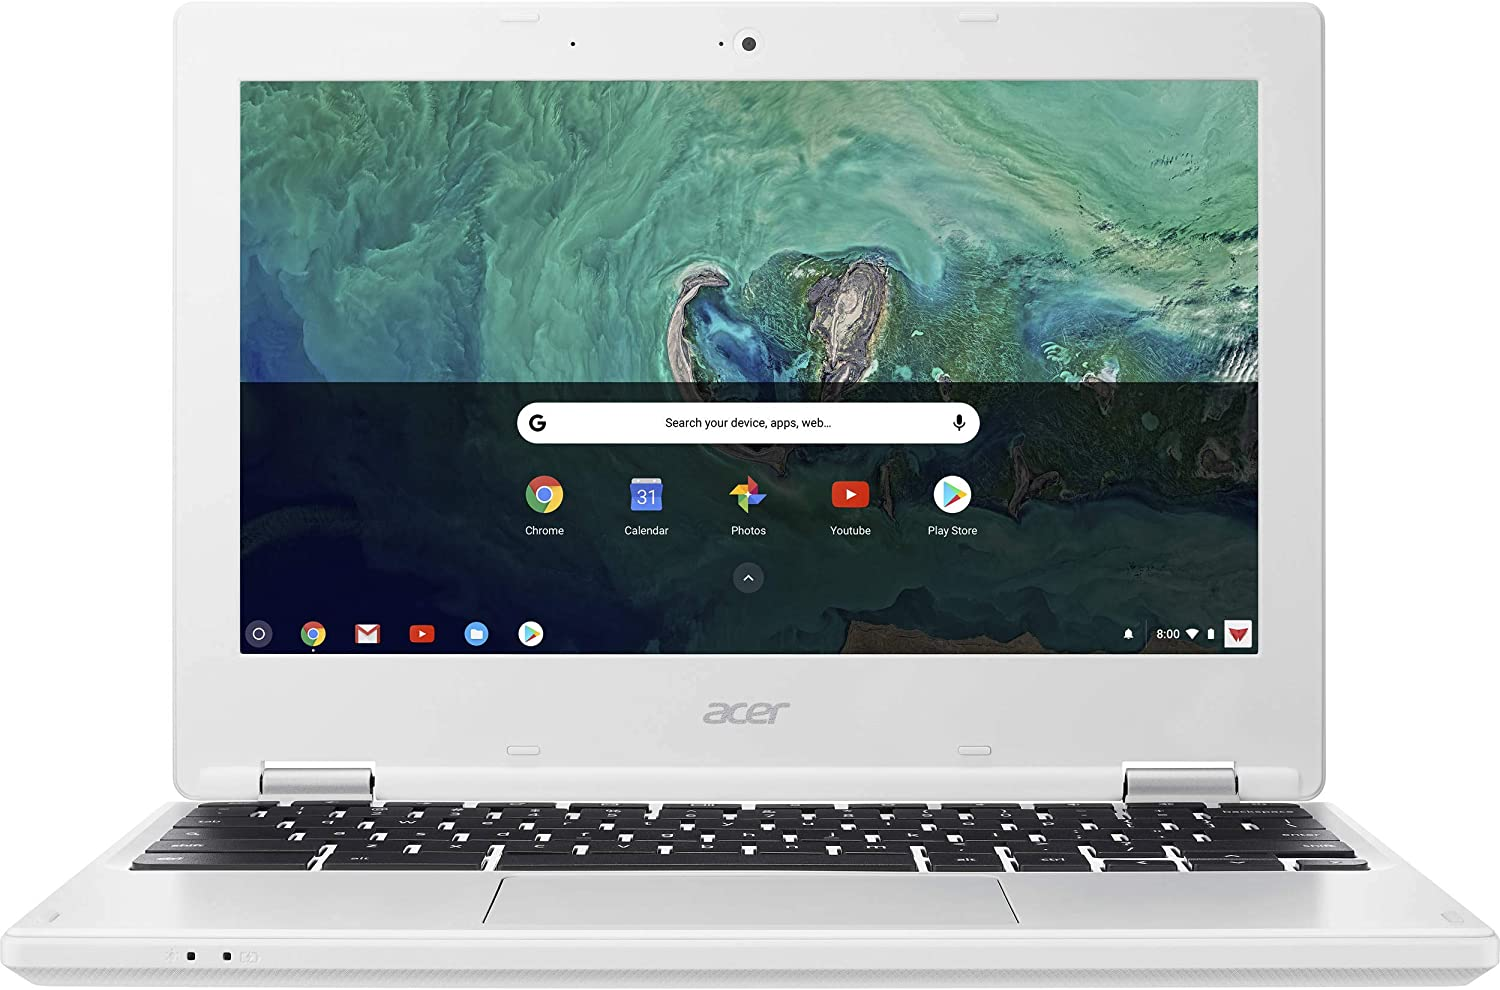 Acer 11.6in Chromebook 11 Intel Celeron N3060 1.6GHz 2GB Ram 16GB Flash Chrome OS (Renewed)